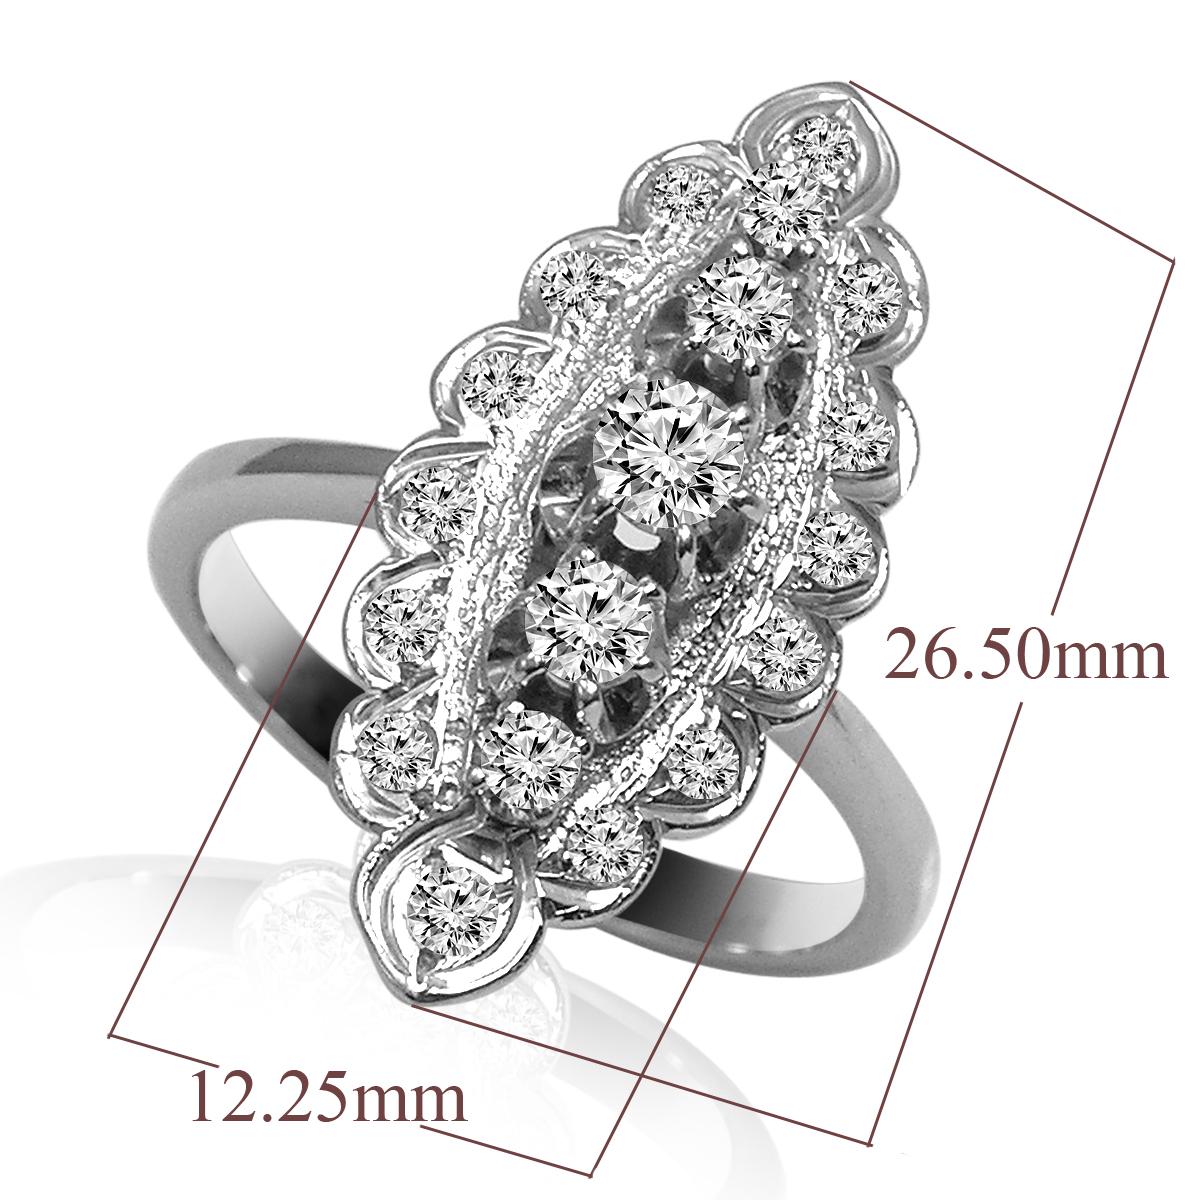 14K White Gold Diamond Russian style Ring